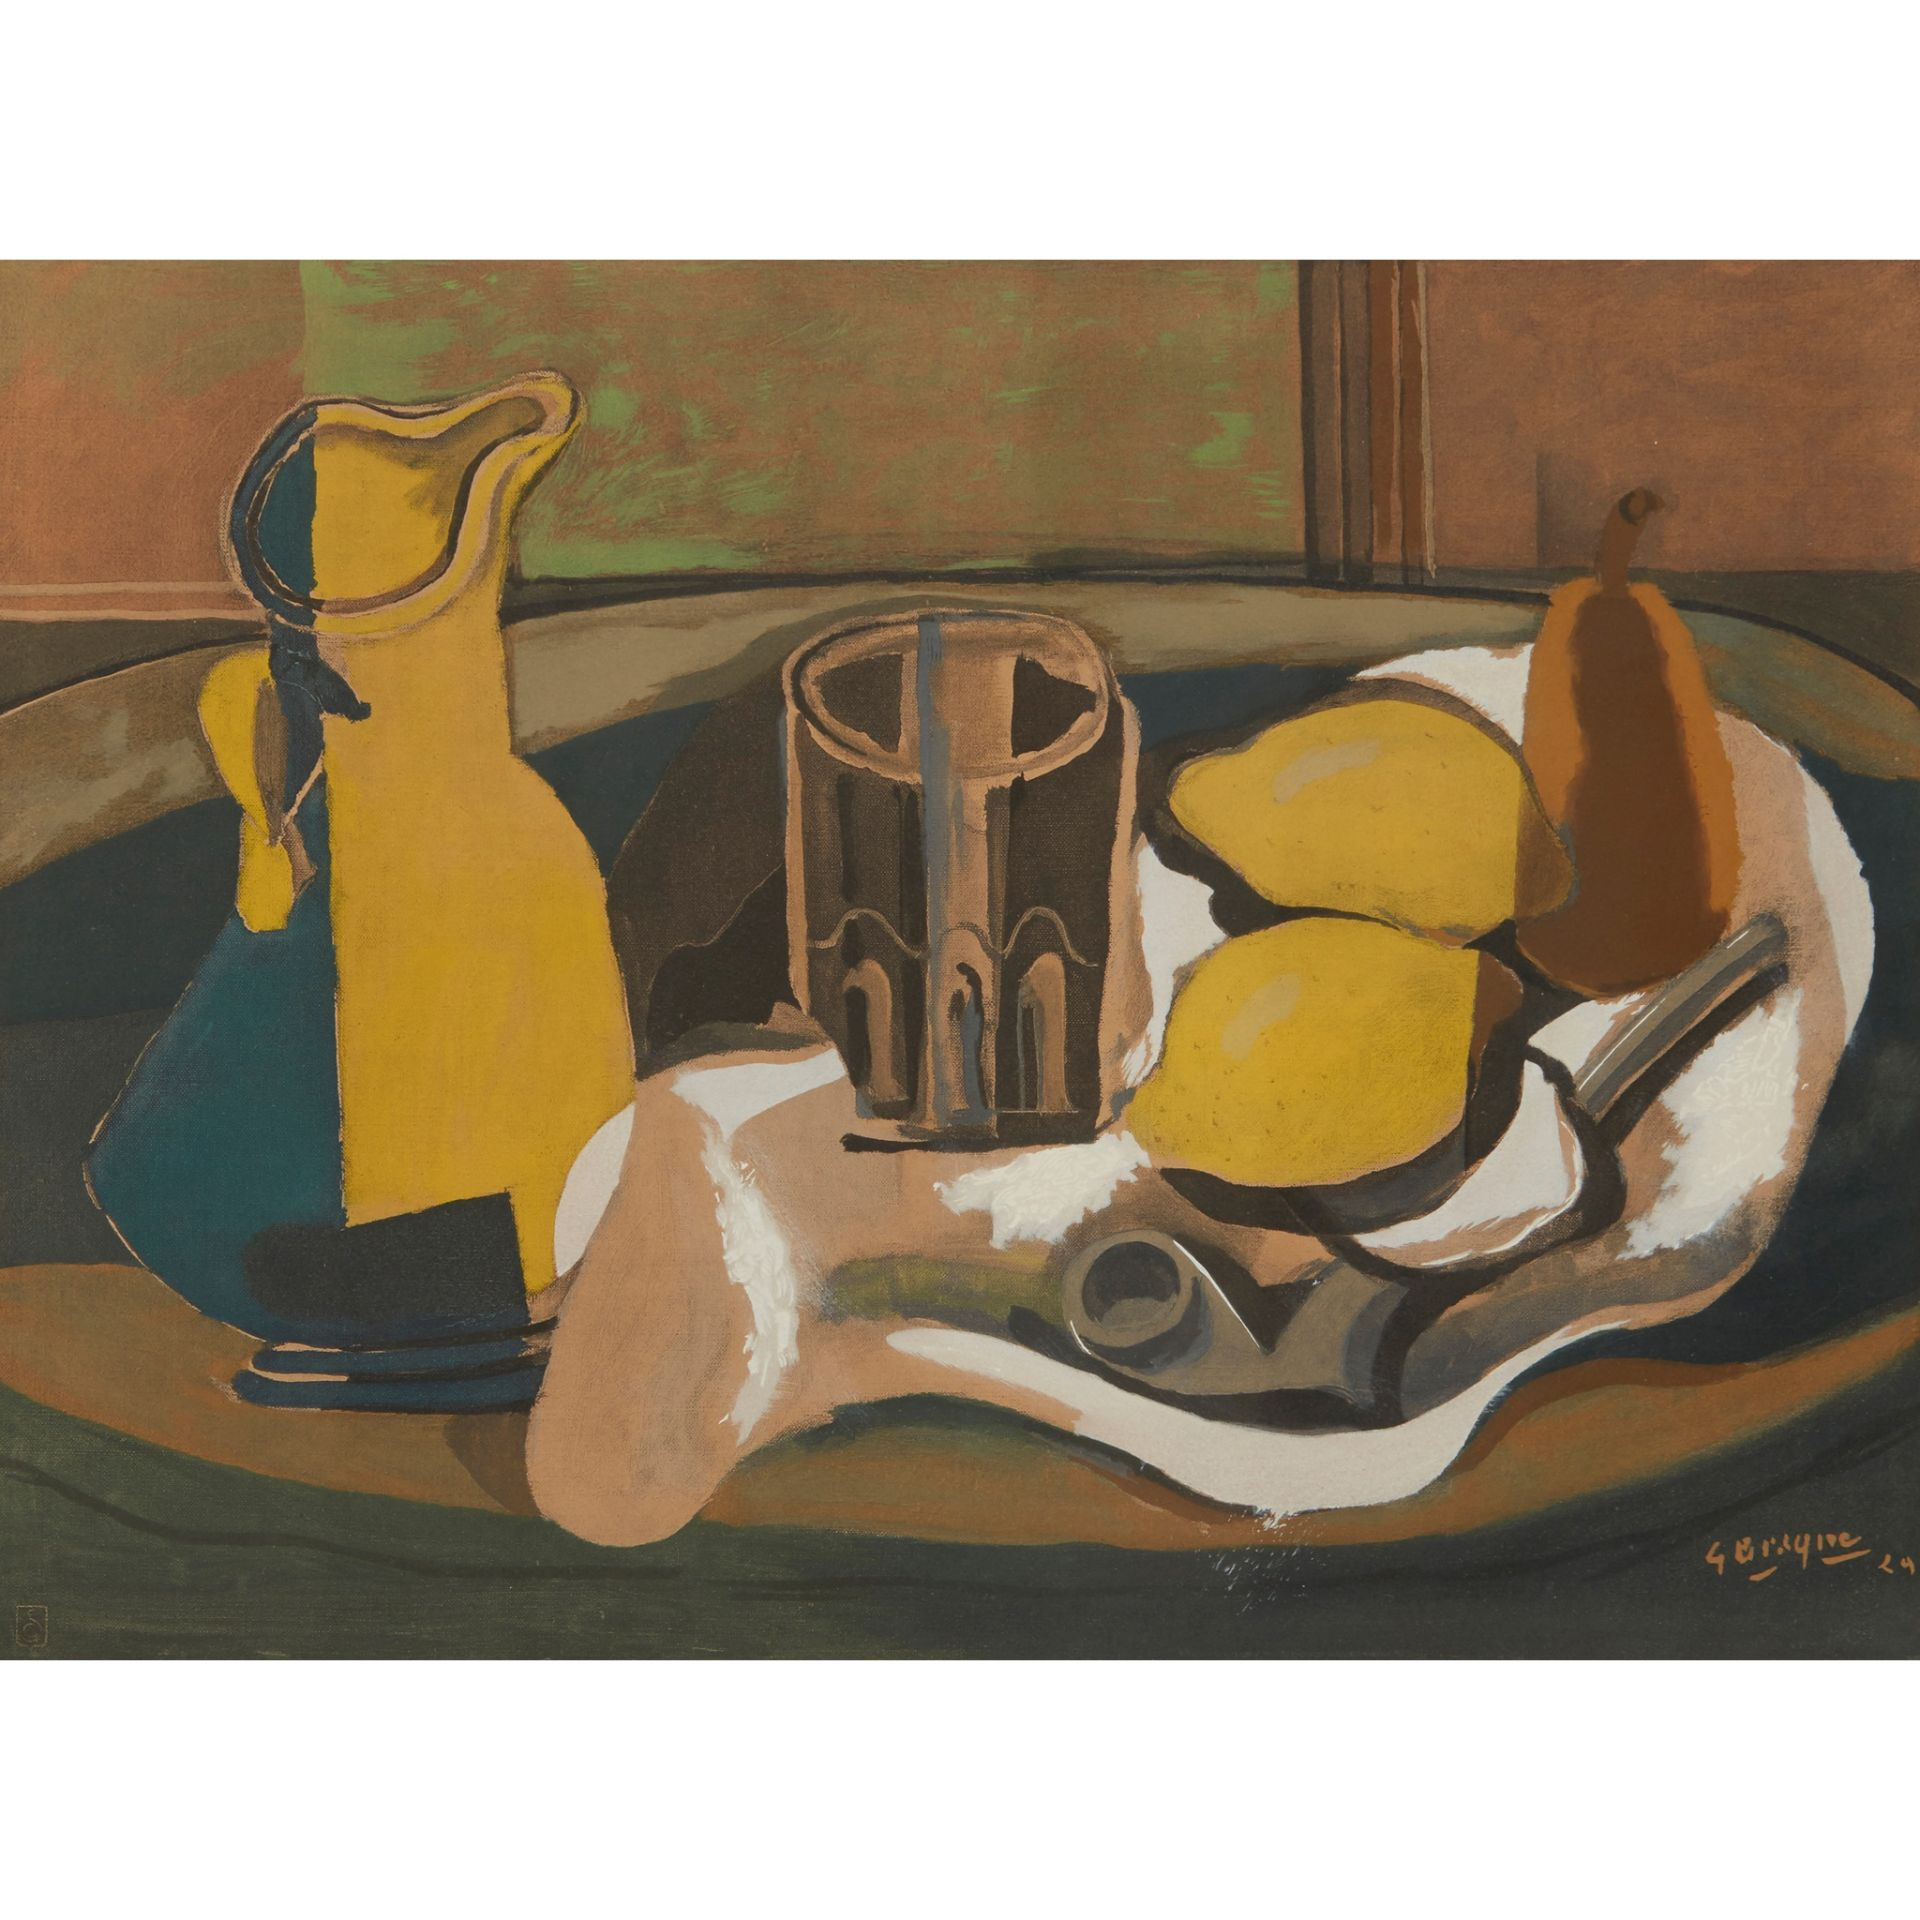 § GEORGES BRAQUE (FRENCH 1882-1963), AFTER STILL-LIFE WITH TWO LEMONS AND A PIPE - Image 2 of 4